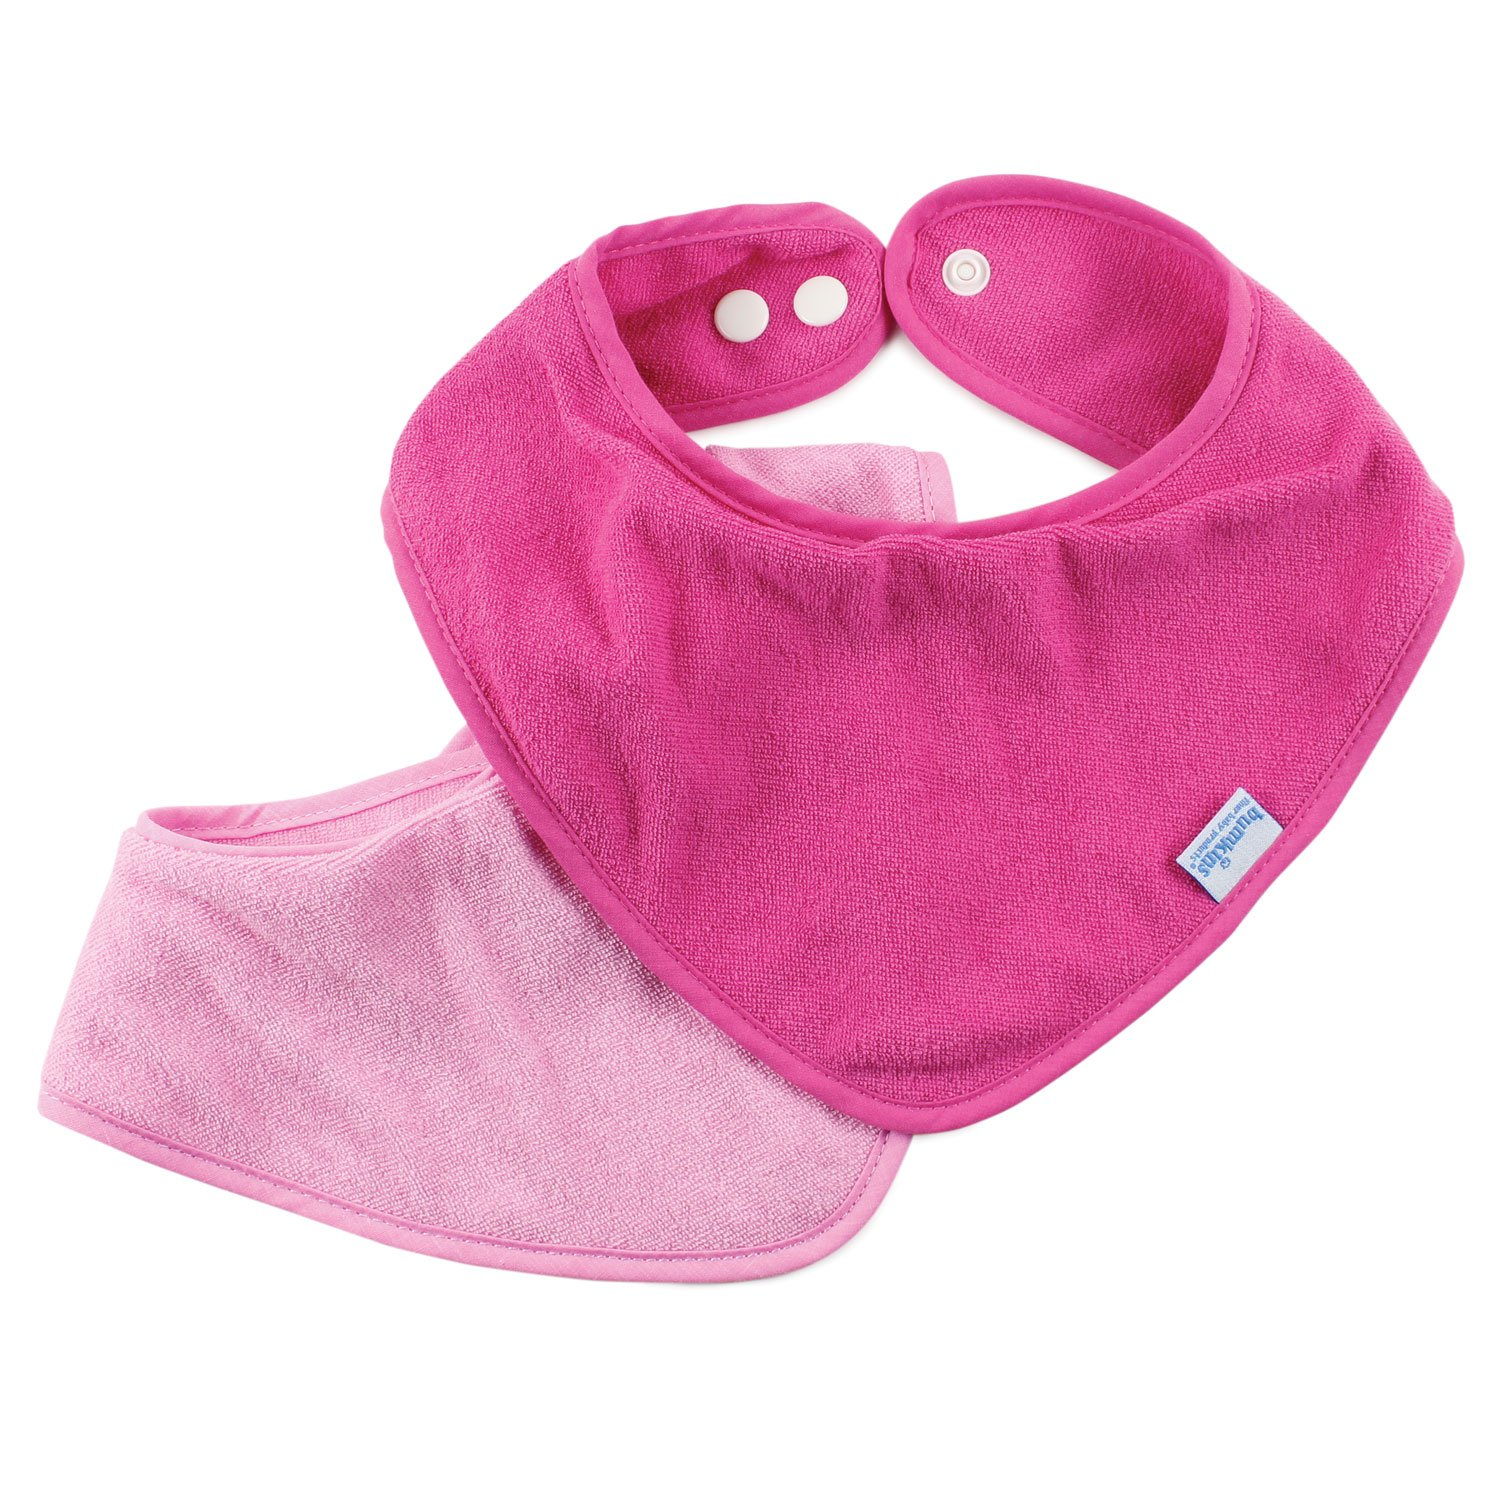 Bumkins 2 Count Absorbent Cotton Bandana Bib, Pink